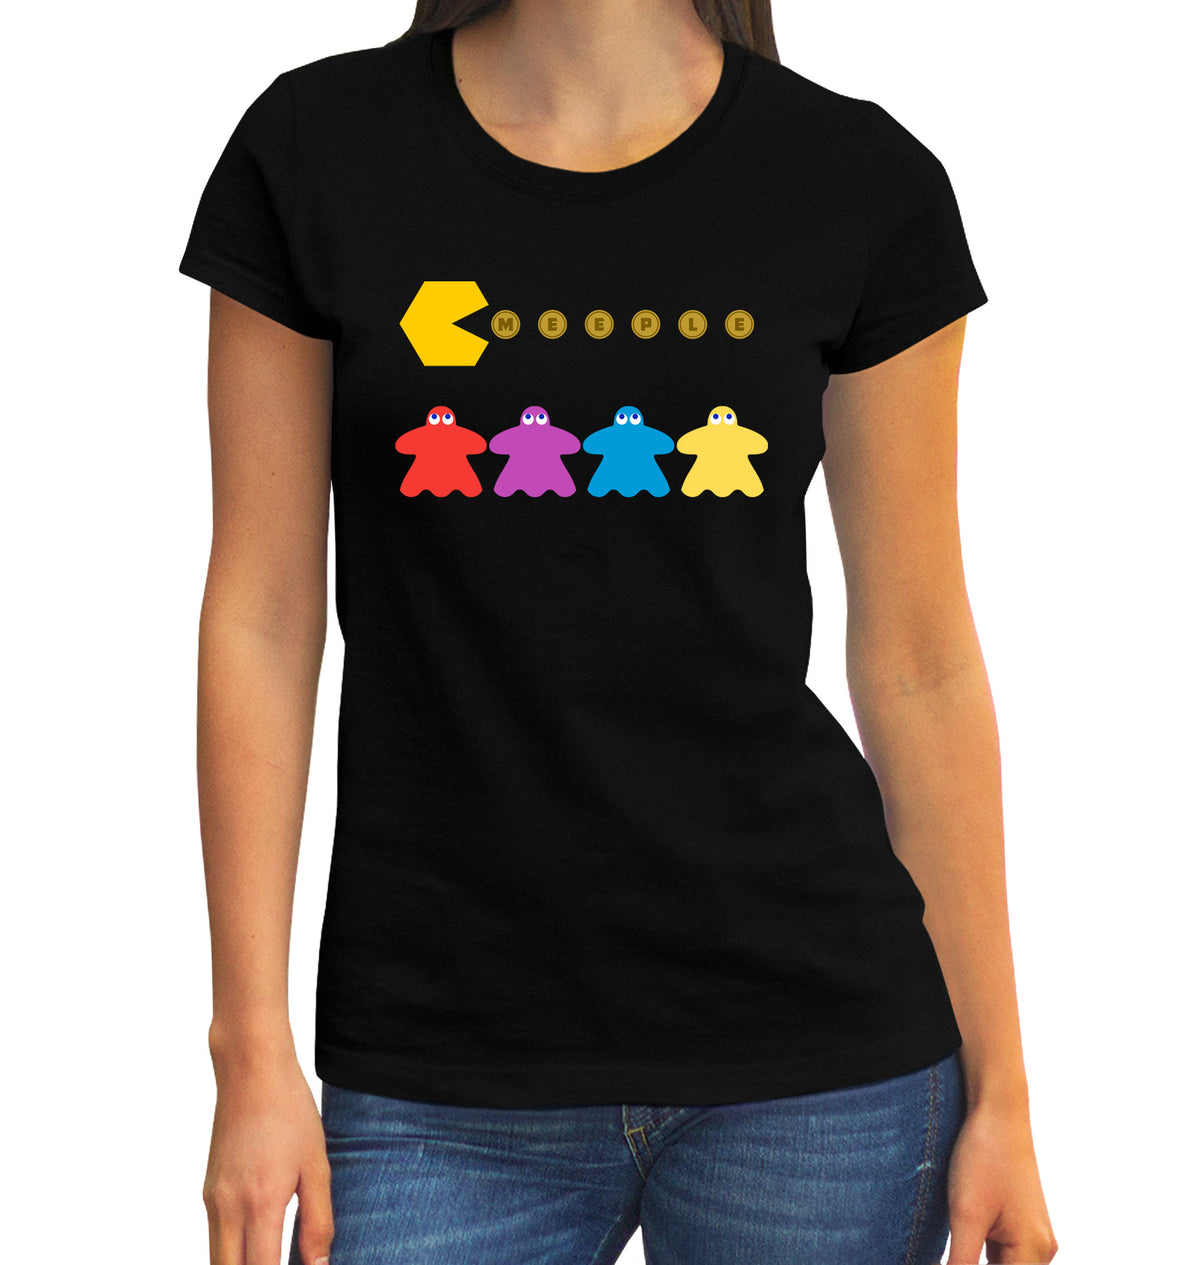 Meeple Chomp Chomp Board Game T-Shirt